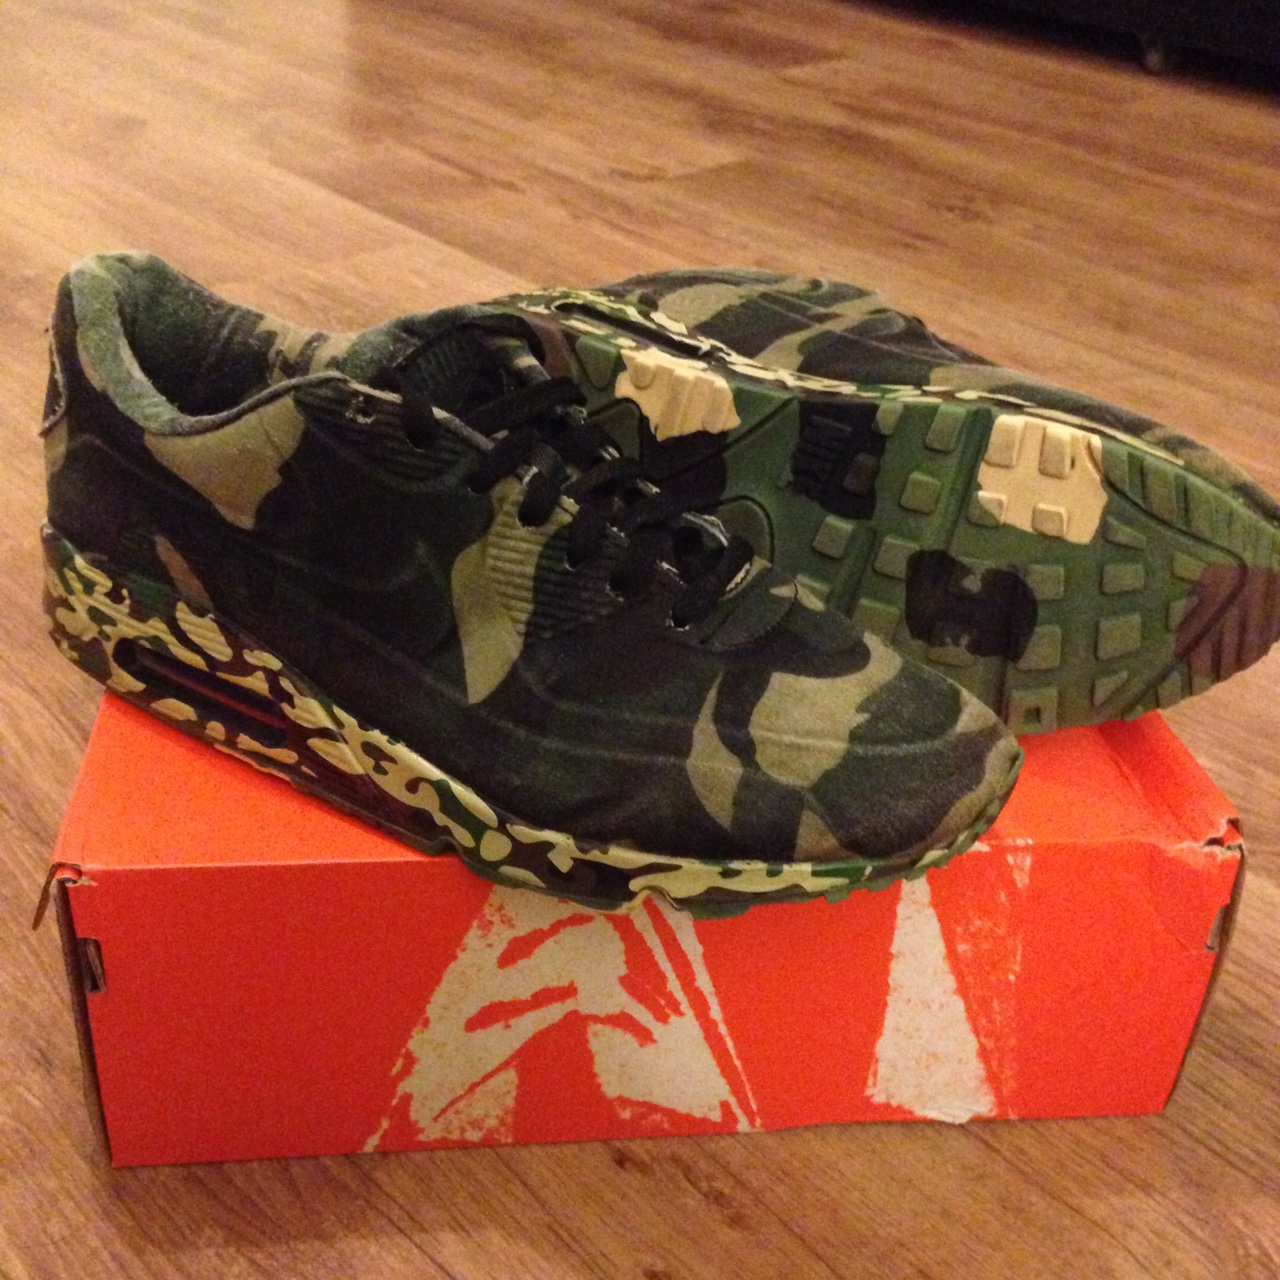 Nike Air max 90 camo VT UK 11. 810 condition. They Depop